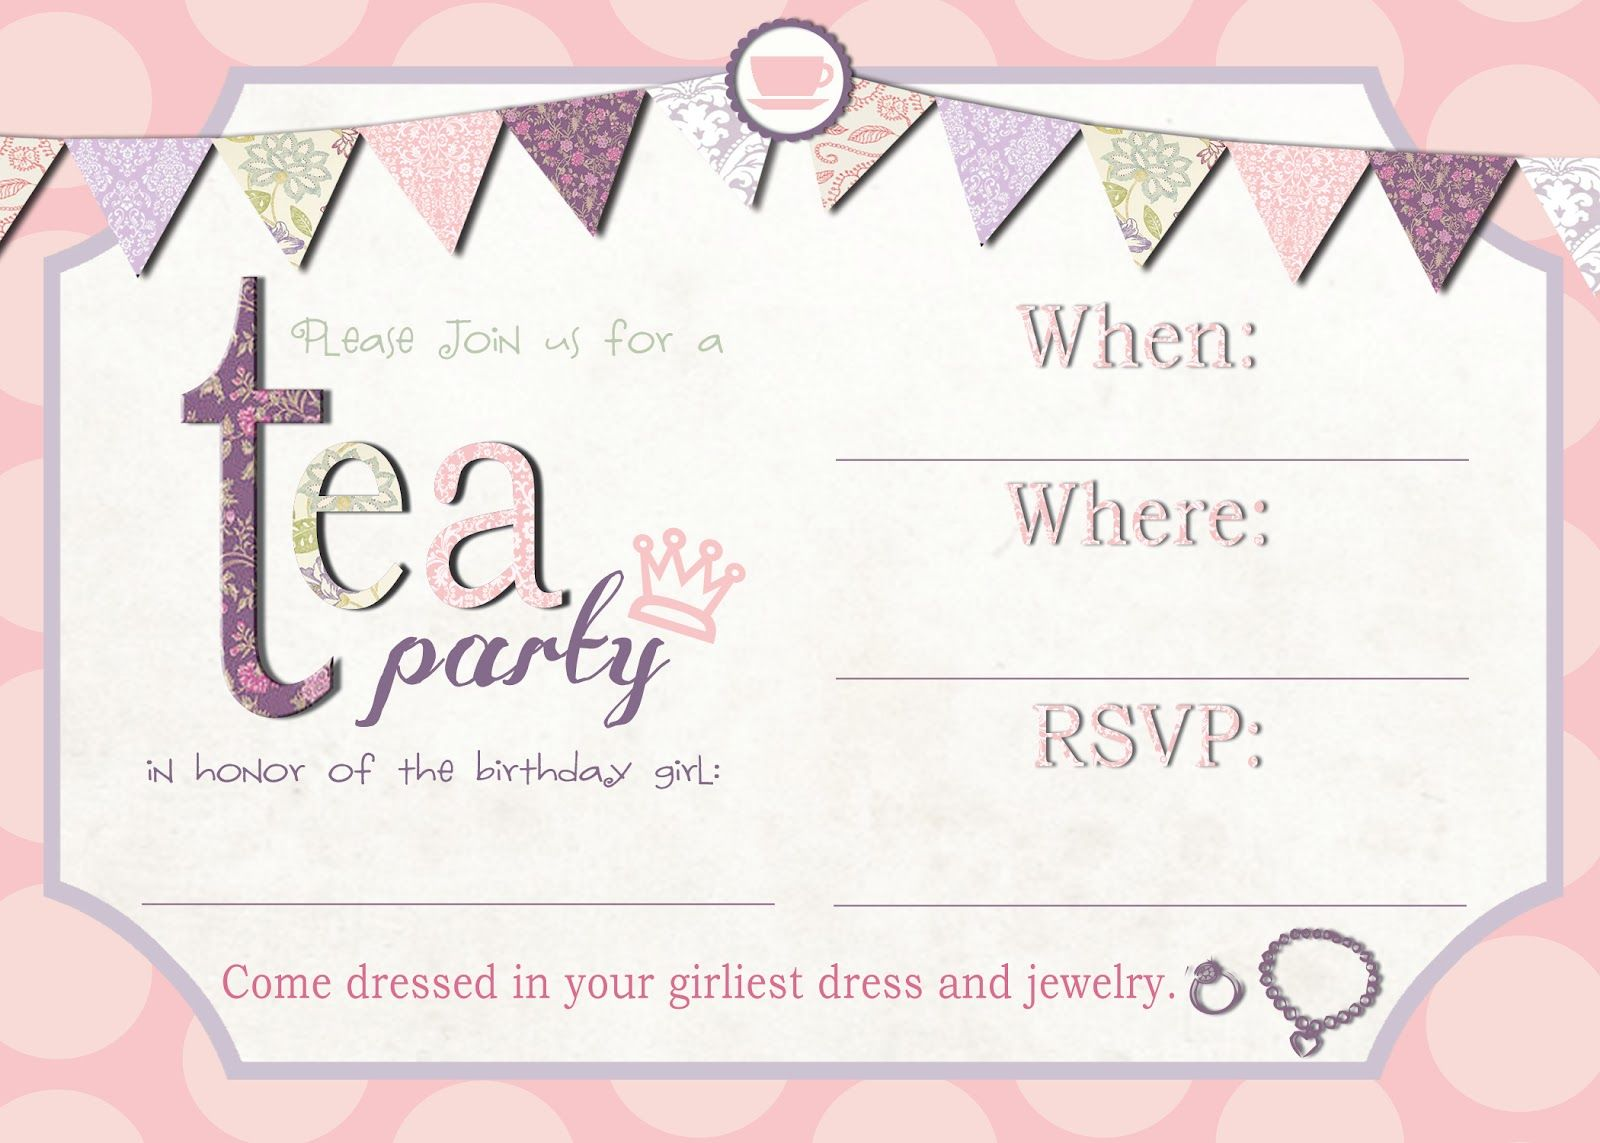 Tea Party Invitation Template Download – InviteTown  Party invite